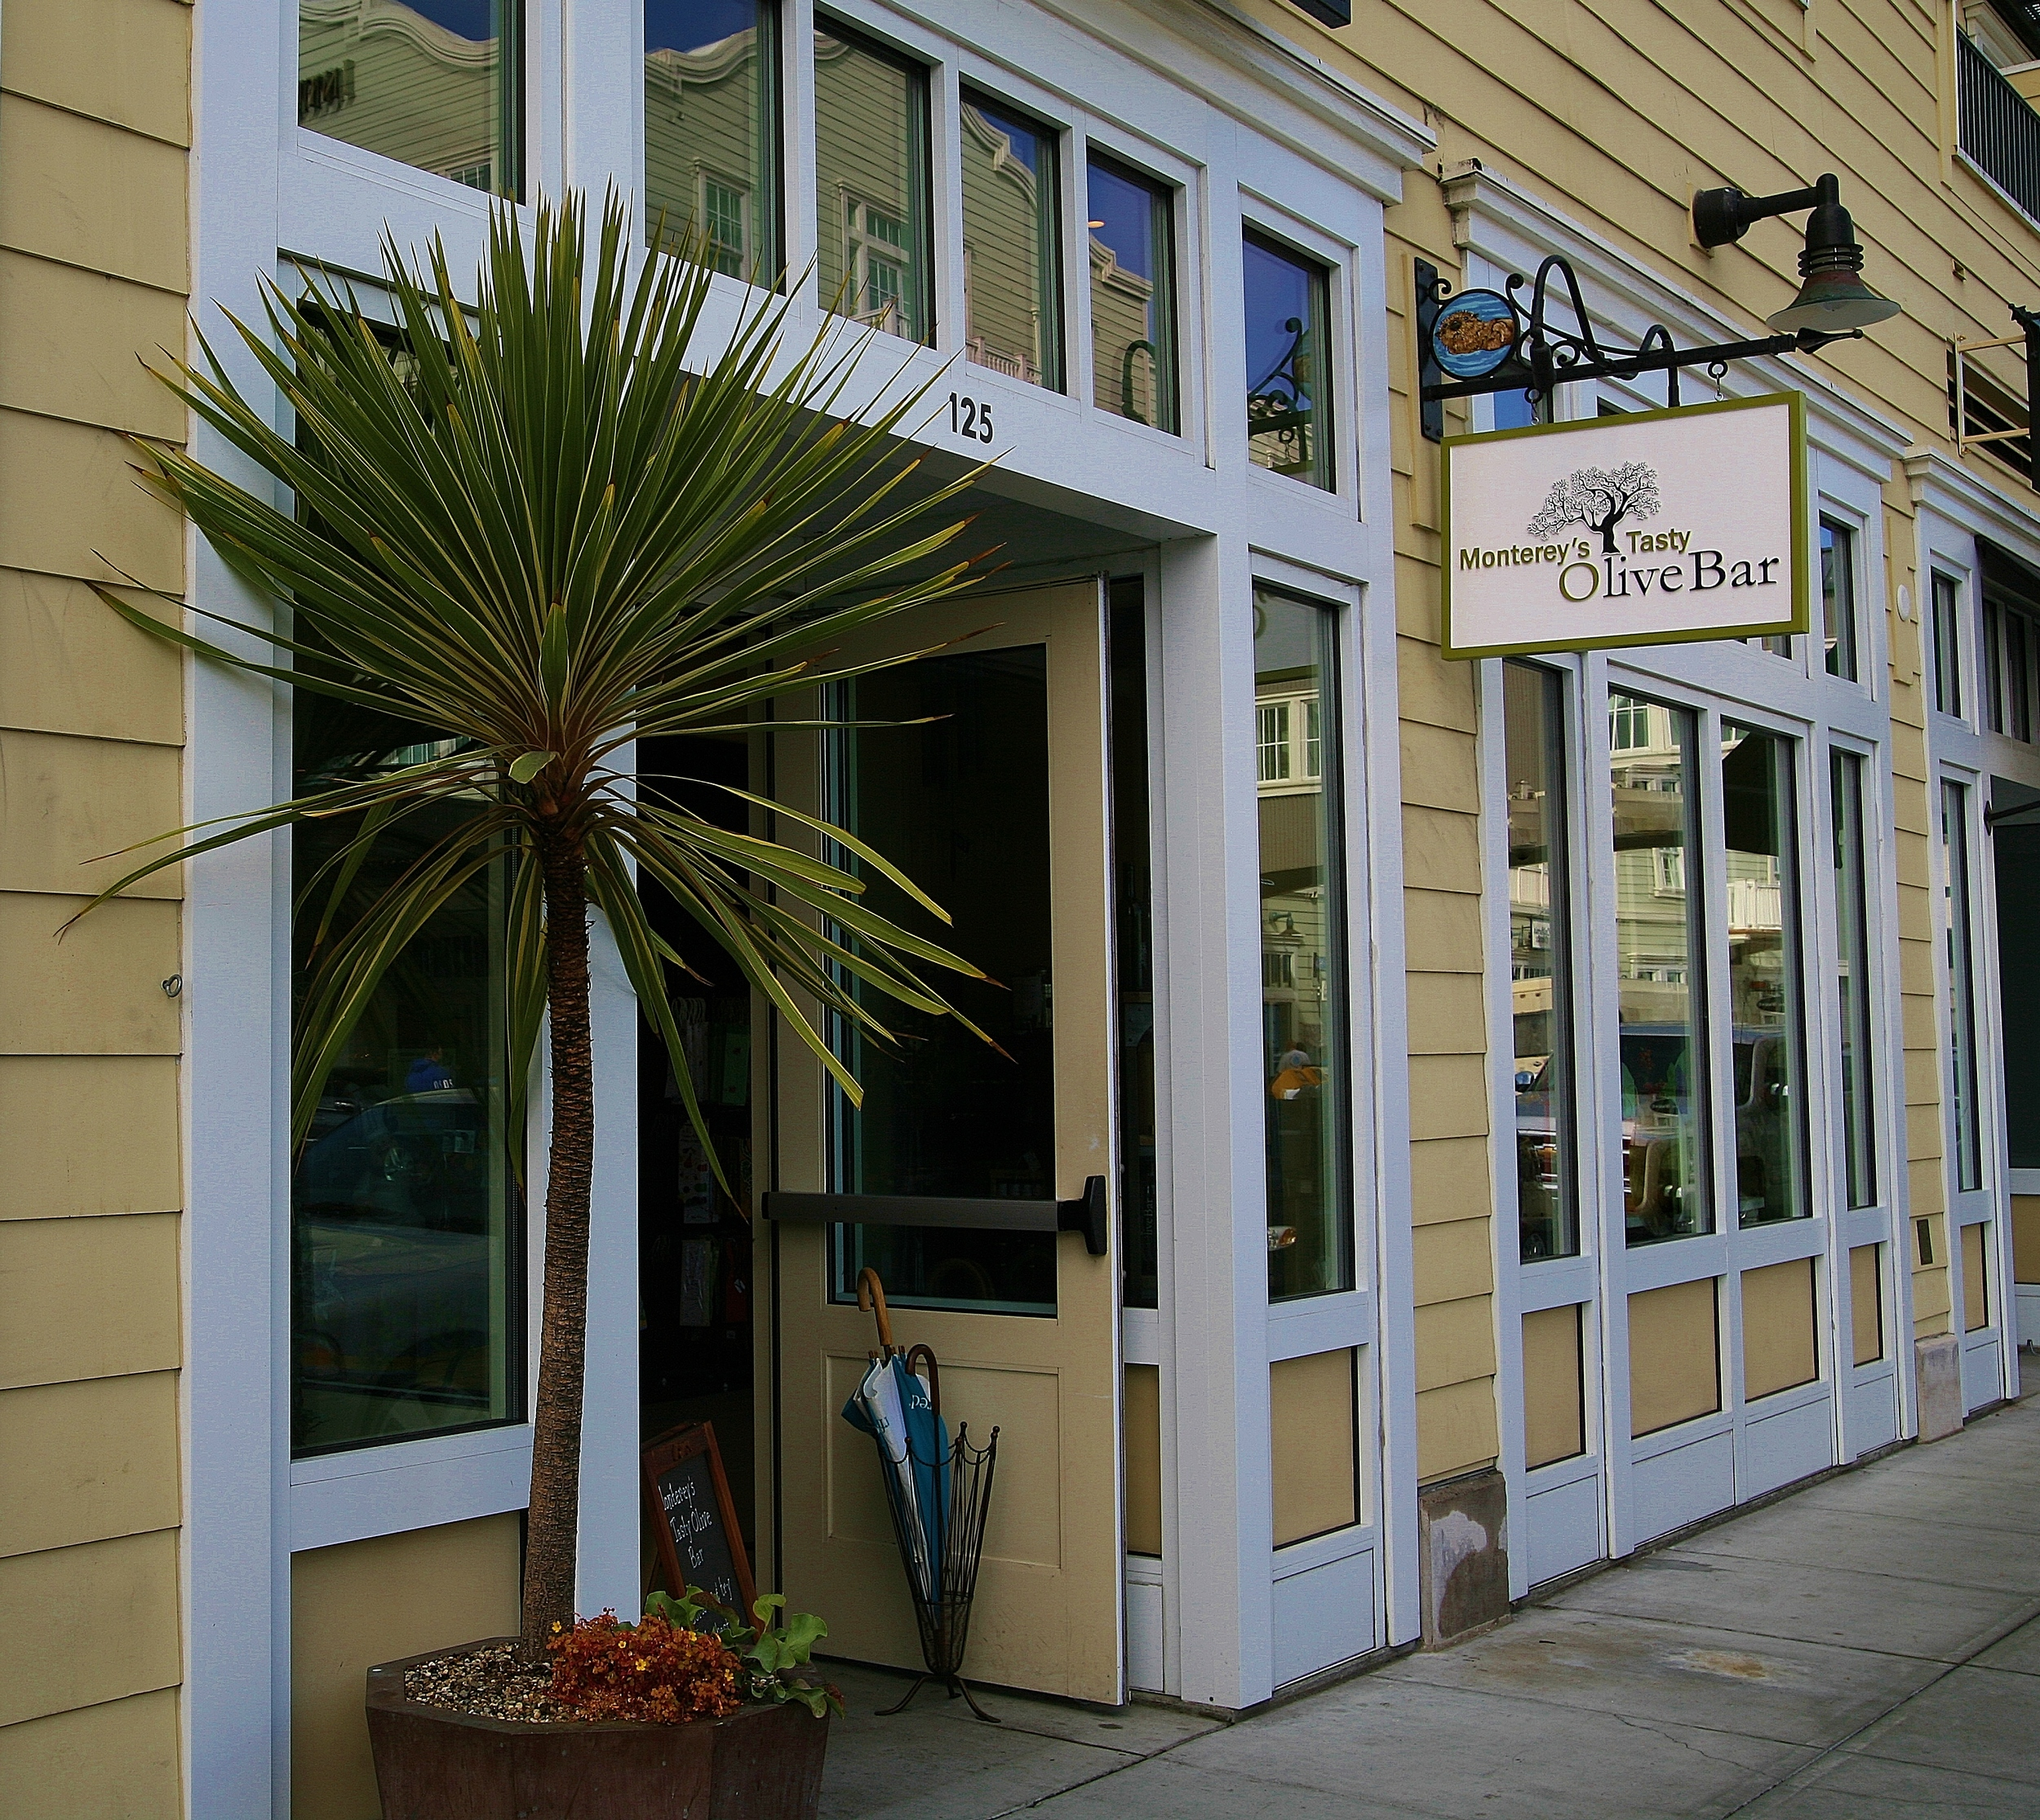 Come visit, taste, and relax in our store on Cannery Row.